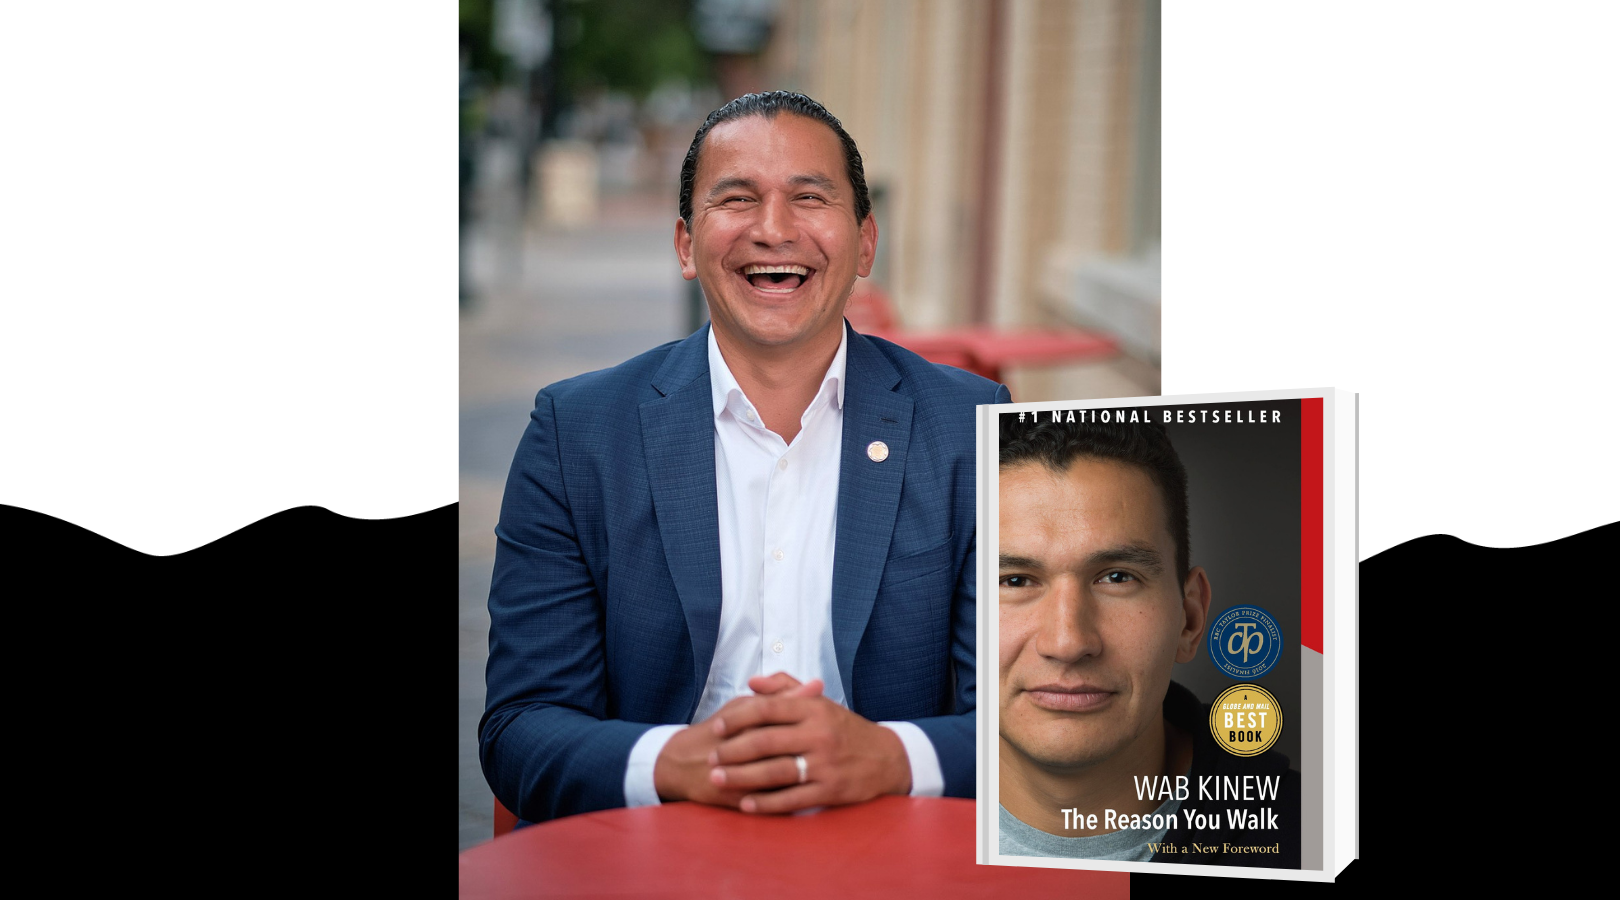 Author Wab Kinew sits at a table with a wide smile. The cover of the book is pictured.